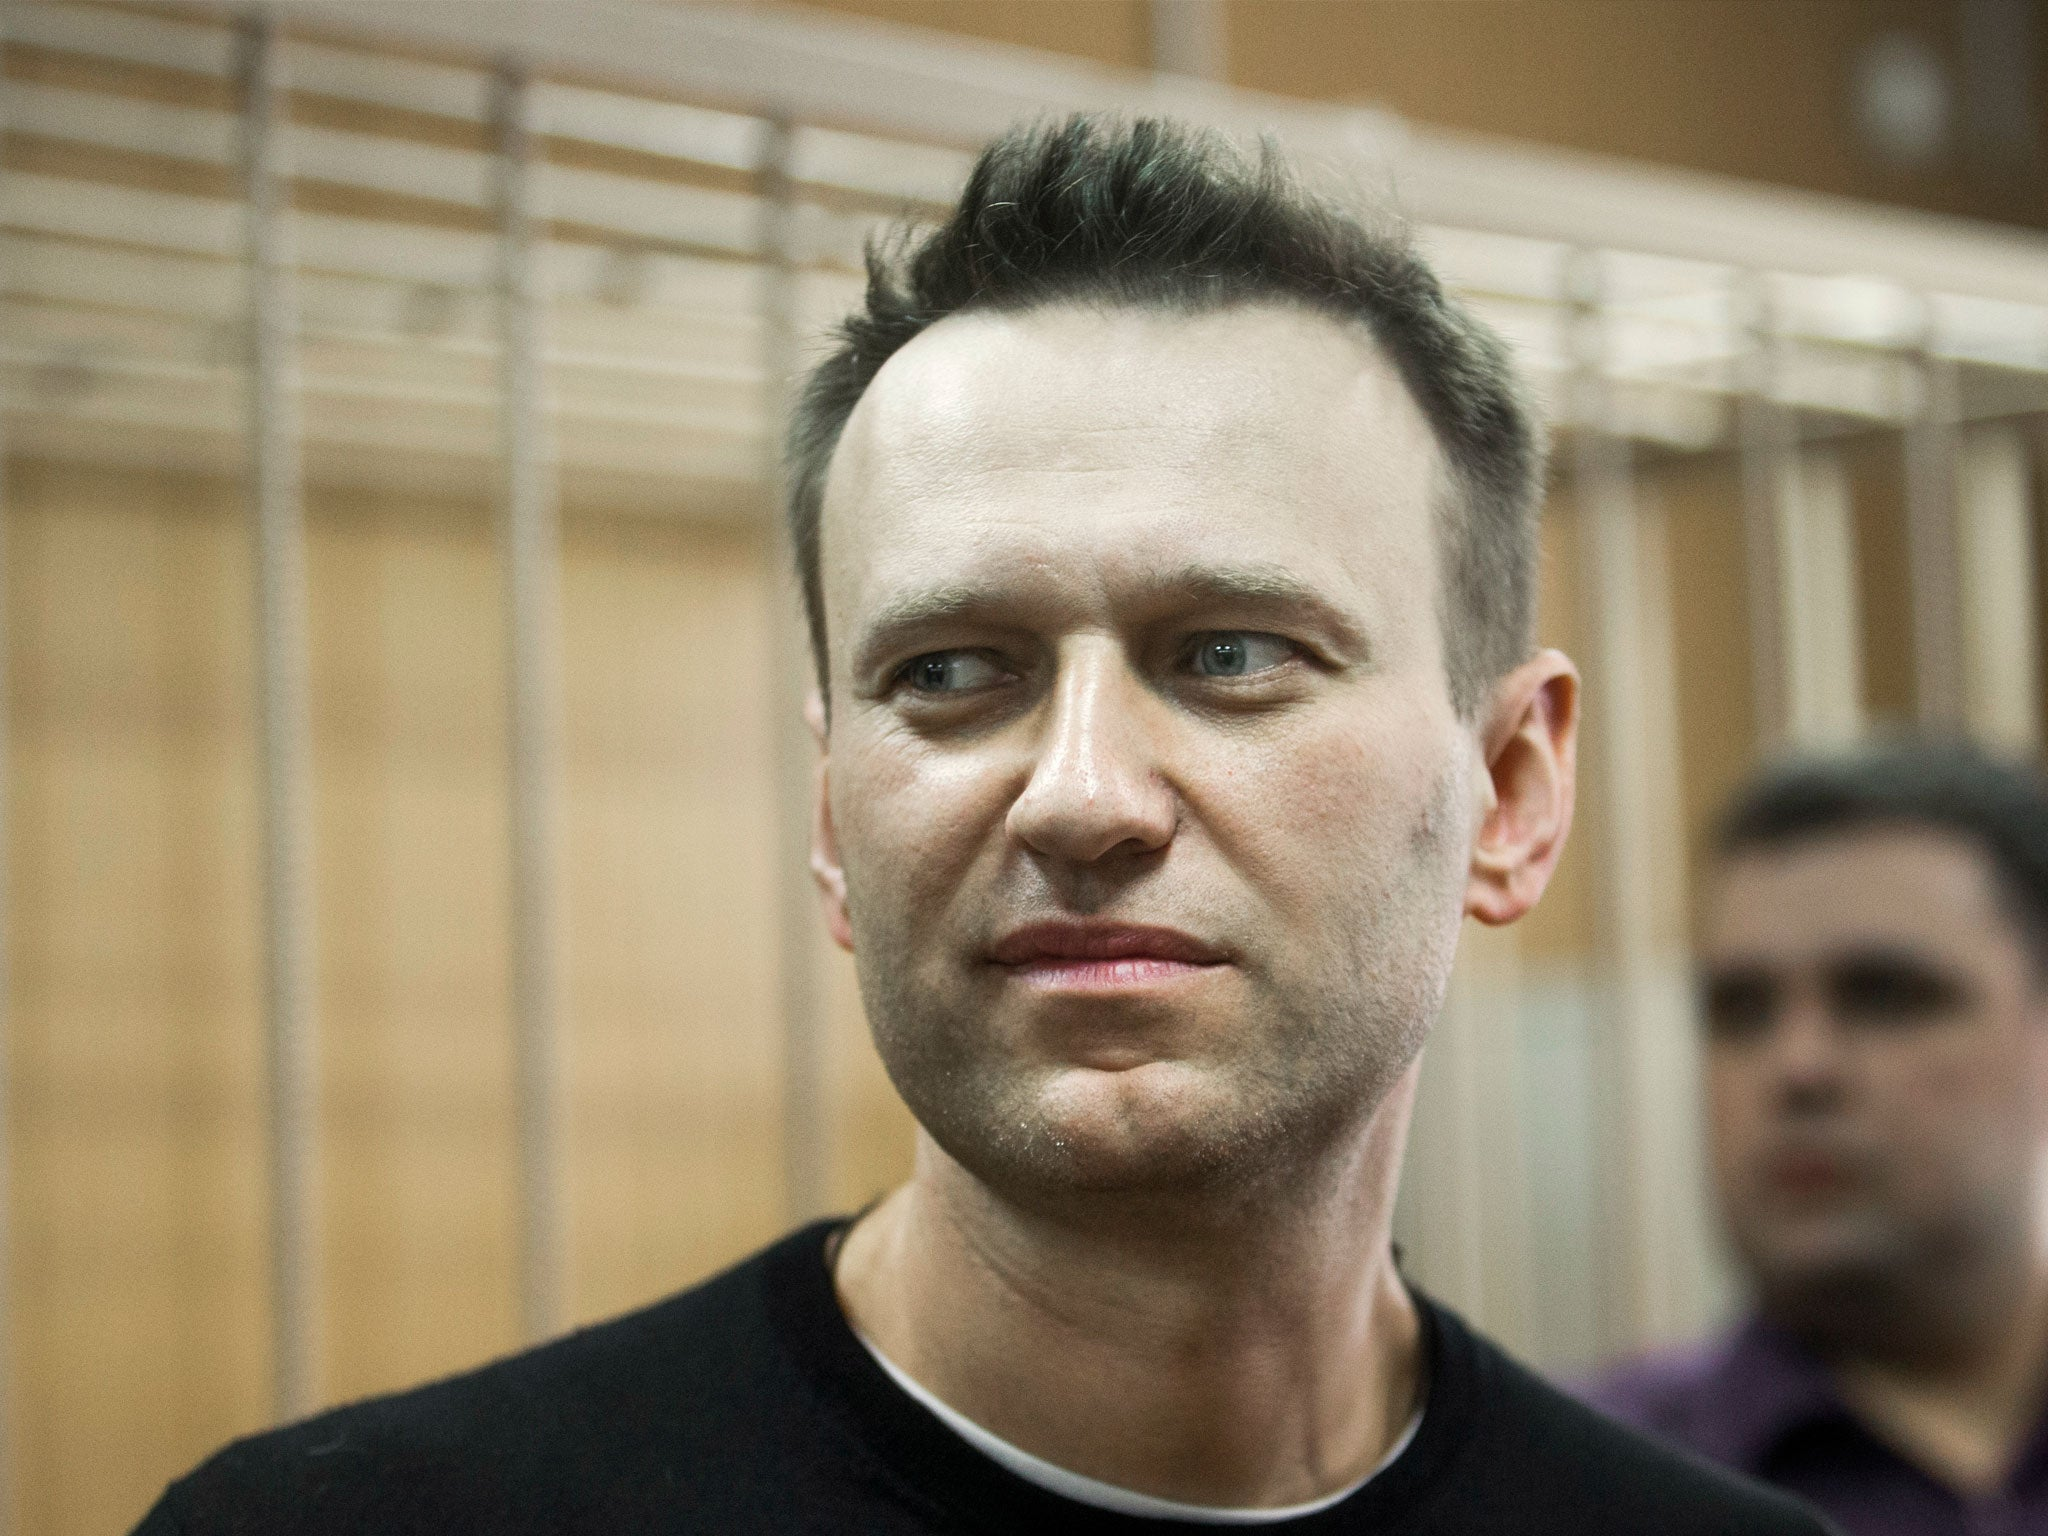 They want to sentence Alexei Navalny to 10 years of imprisonment 12/19/2014 89